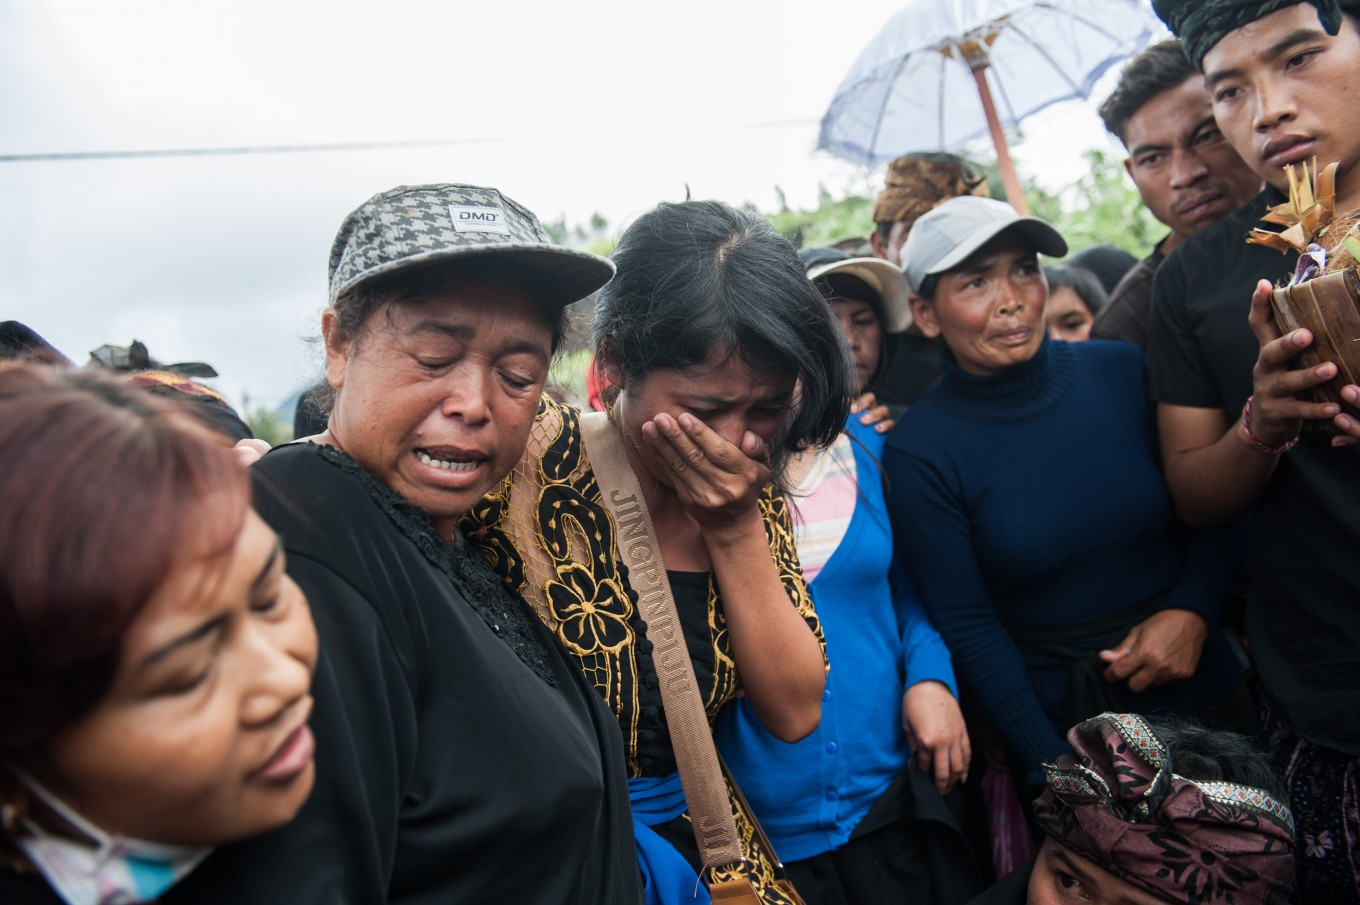 A woman cries during a burial in Songan village on Monday, February 13, 2017. JP/ Anggara Mahendra